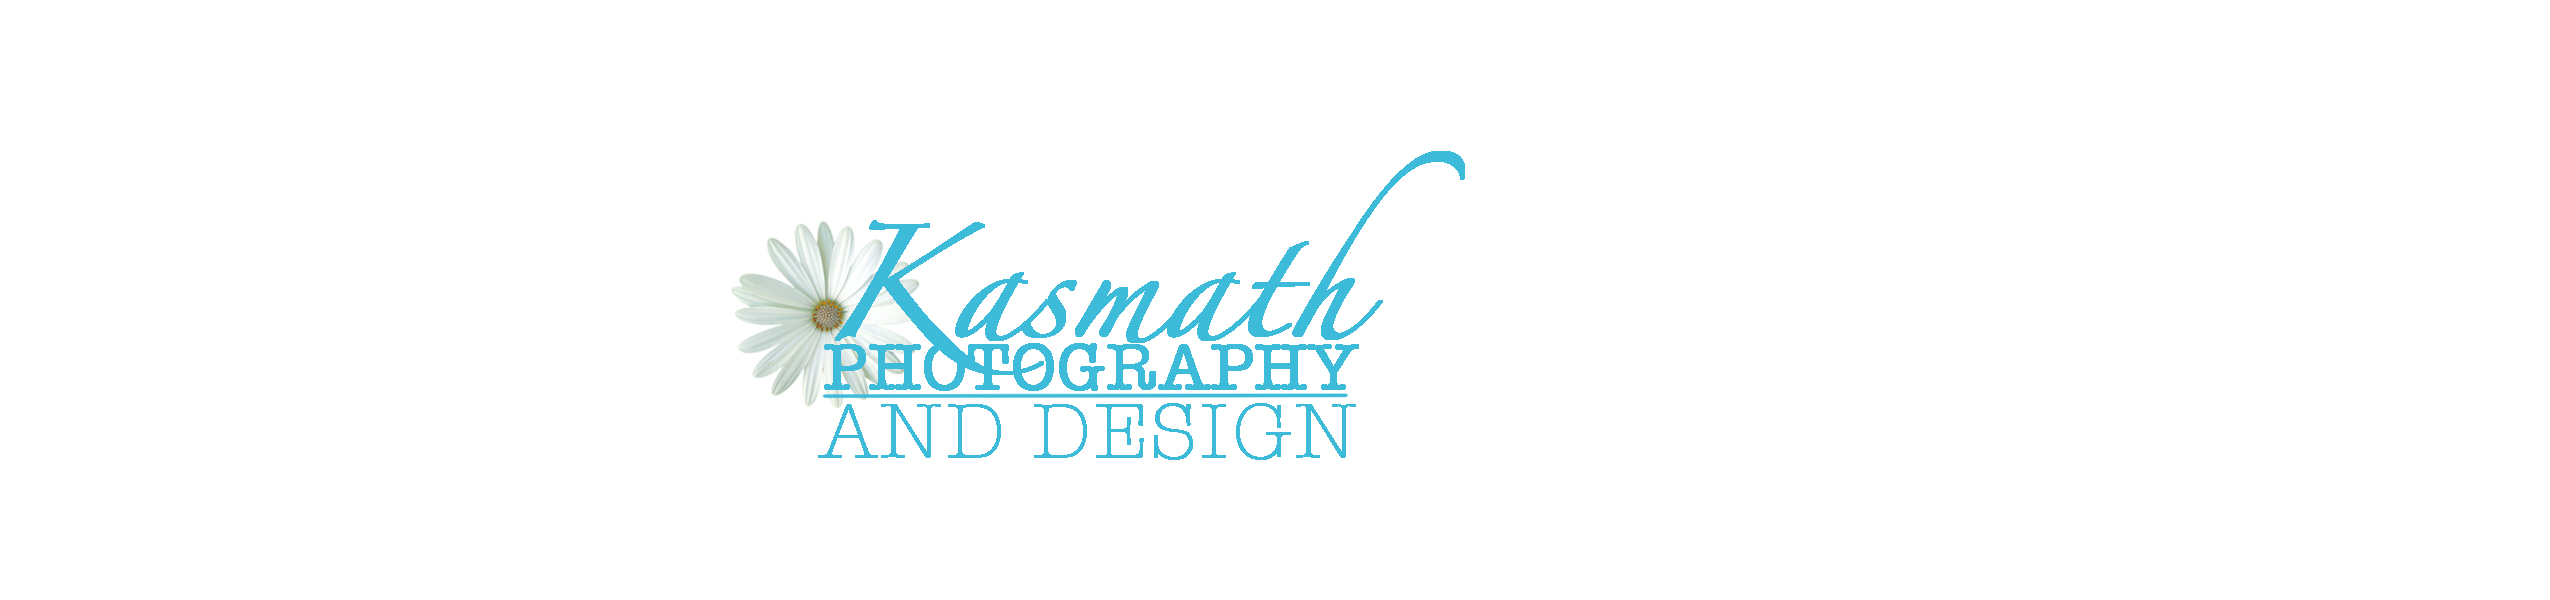 design and photography by Kasandra